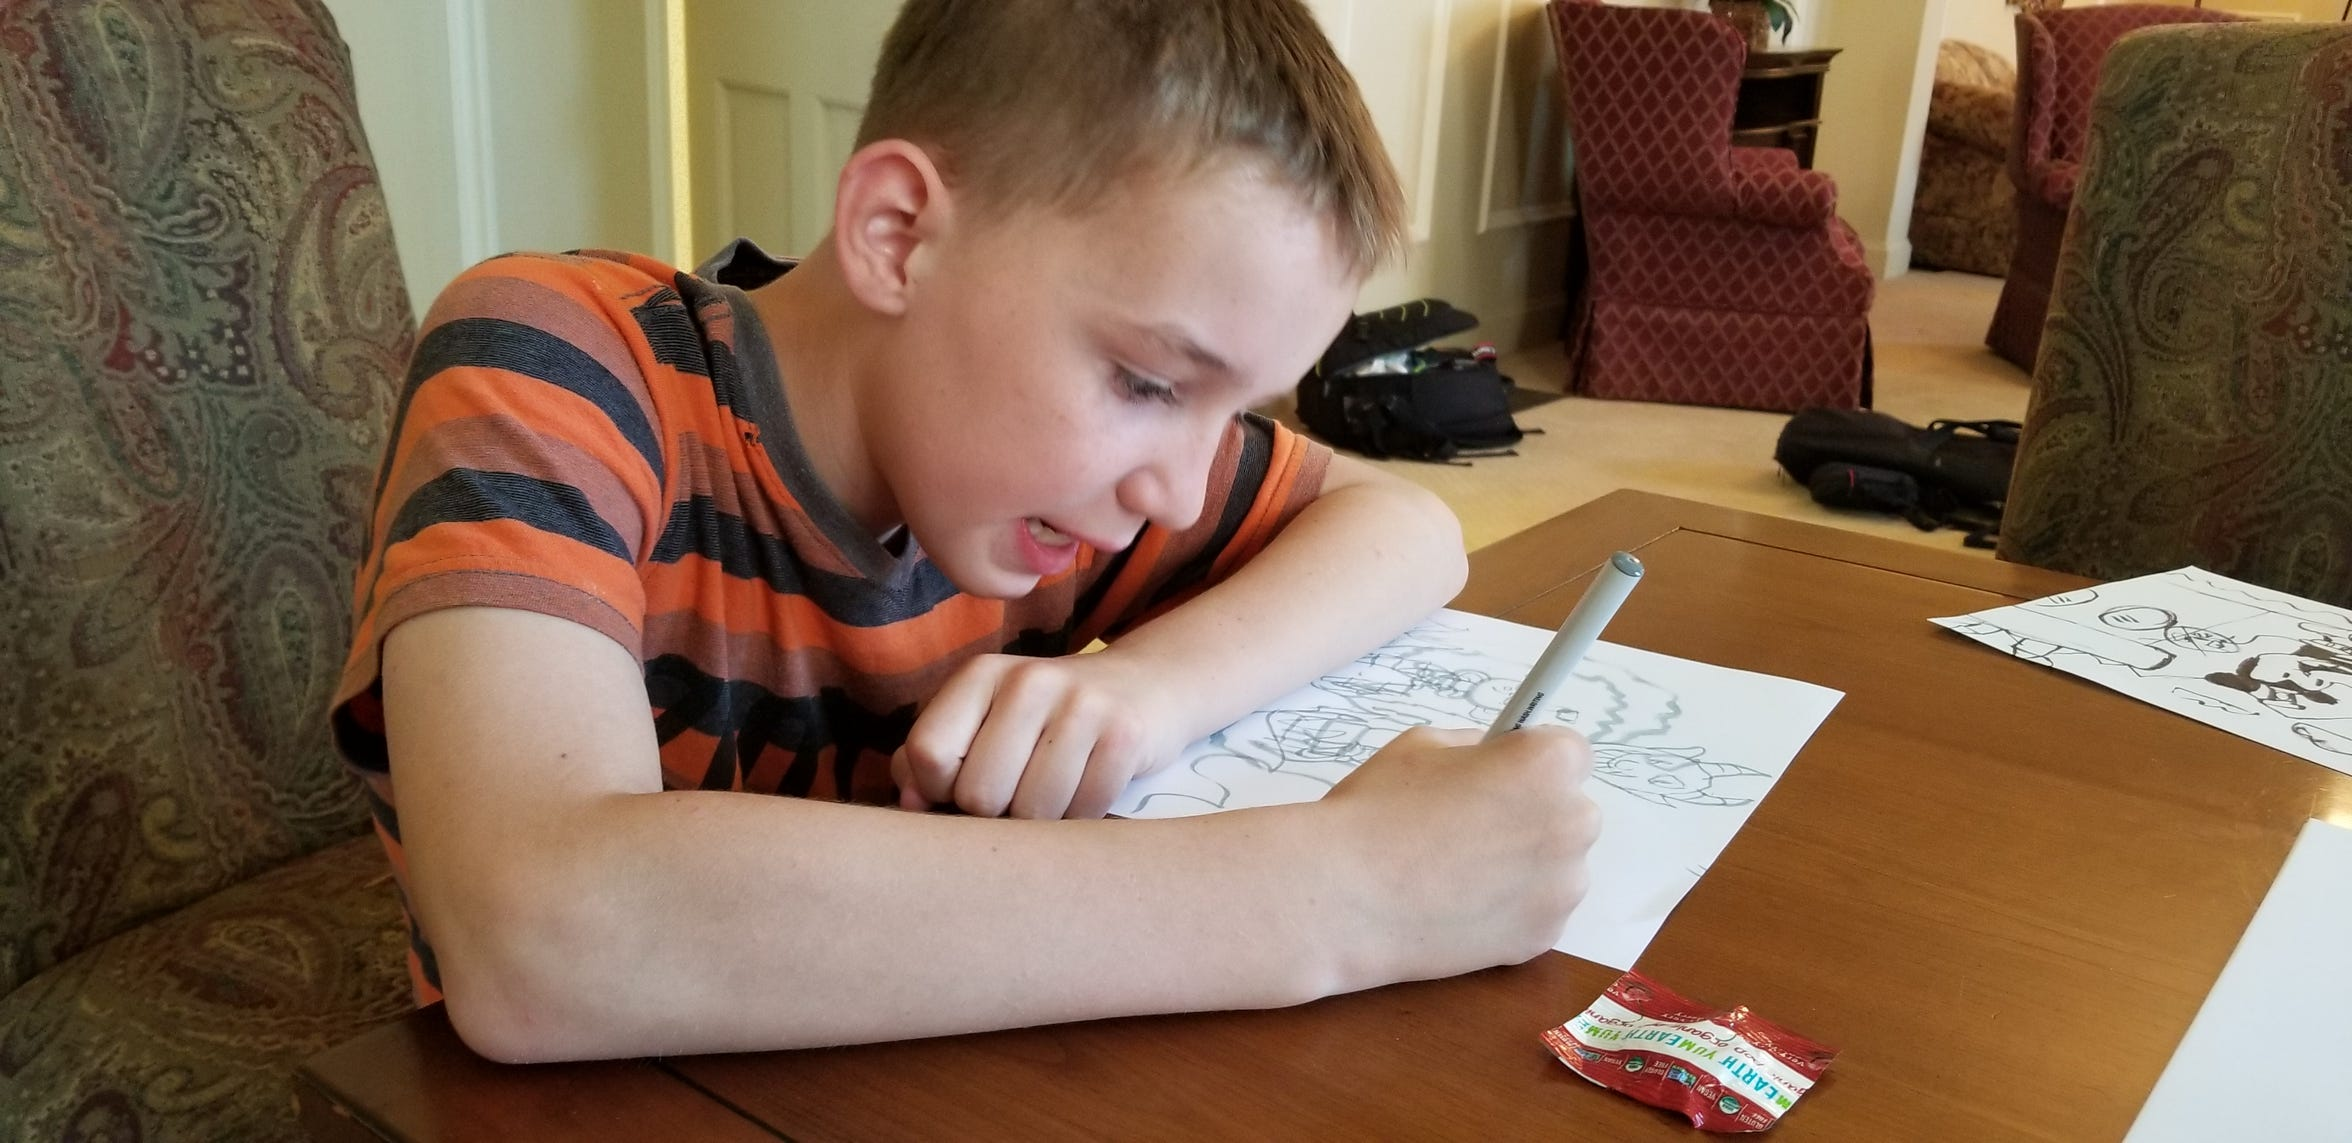 Ethan Fischer is one of 27,488 people helped through United Way grants this year. Ethan receives specialized care through Peace Place Respite Care.